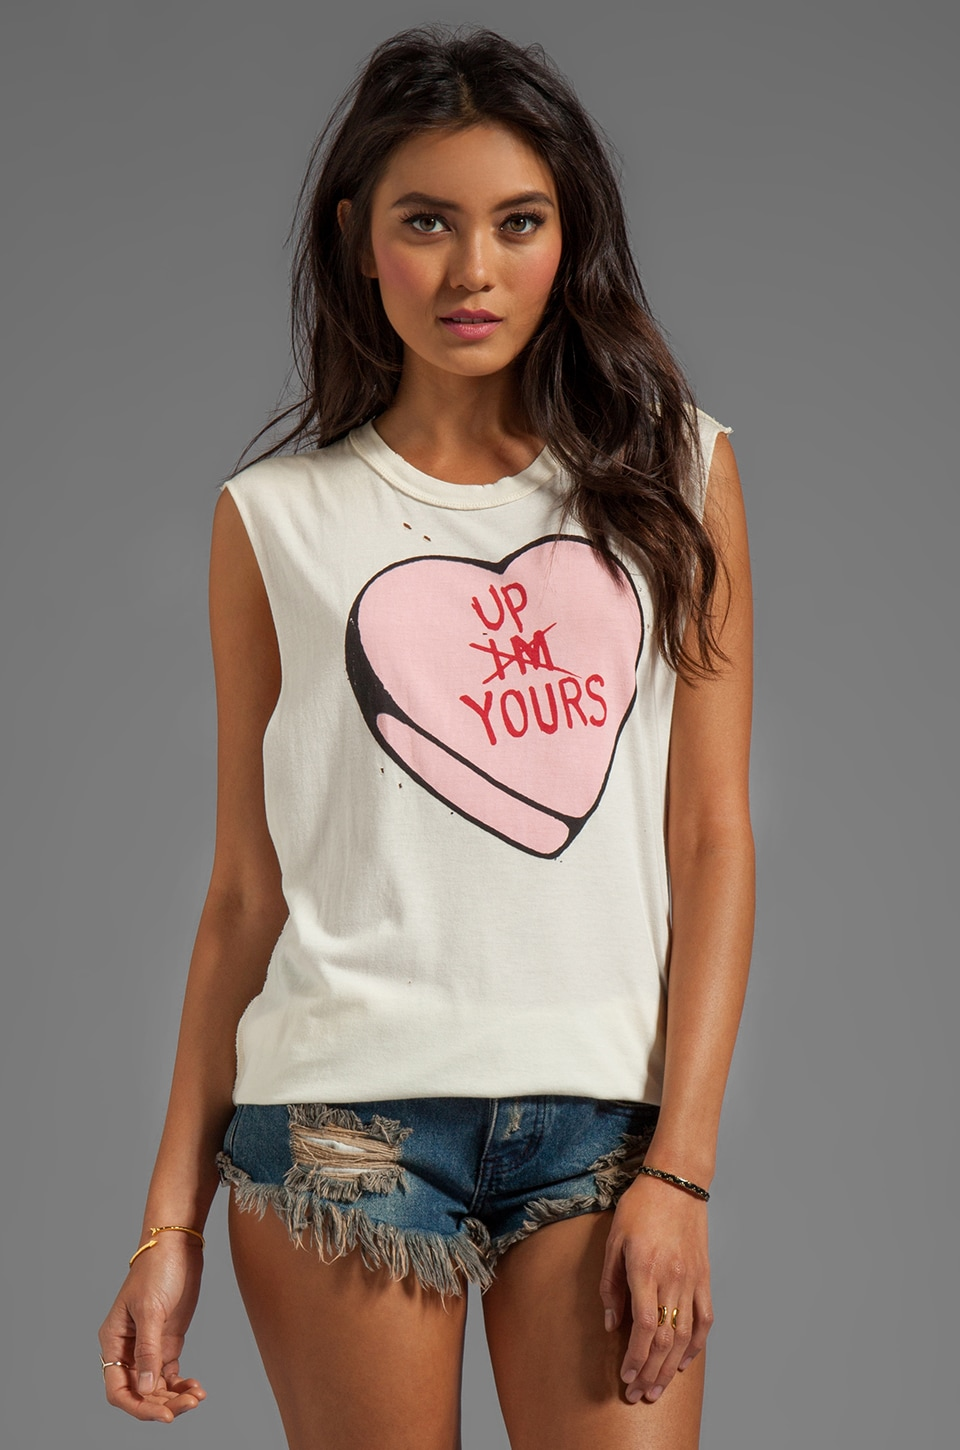 UNIF Up Yours Tank in White